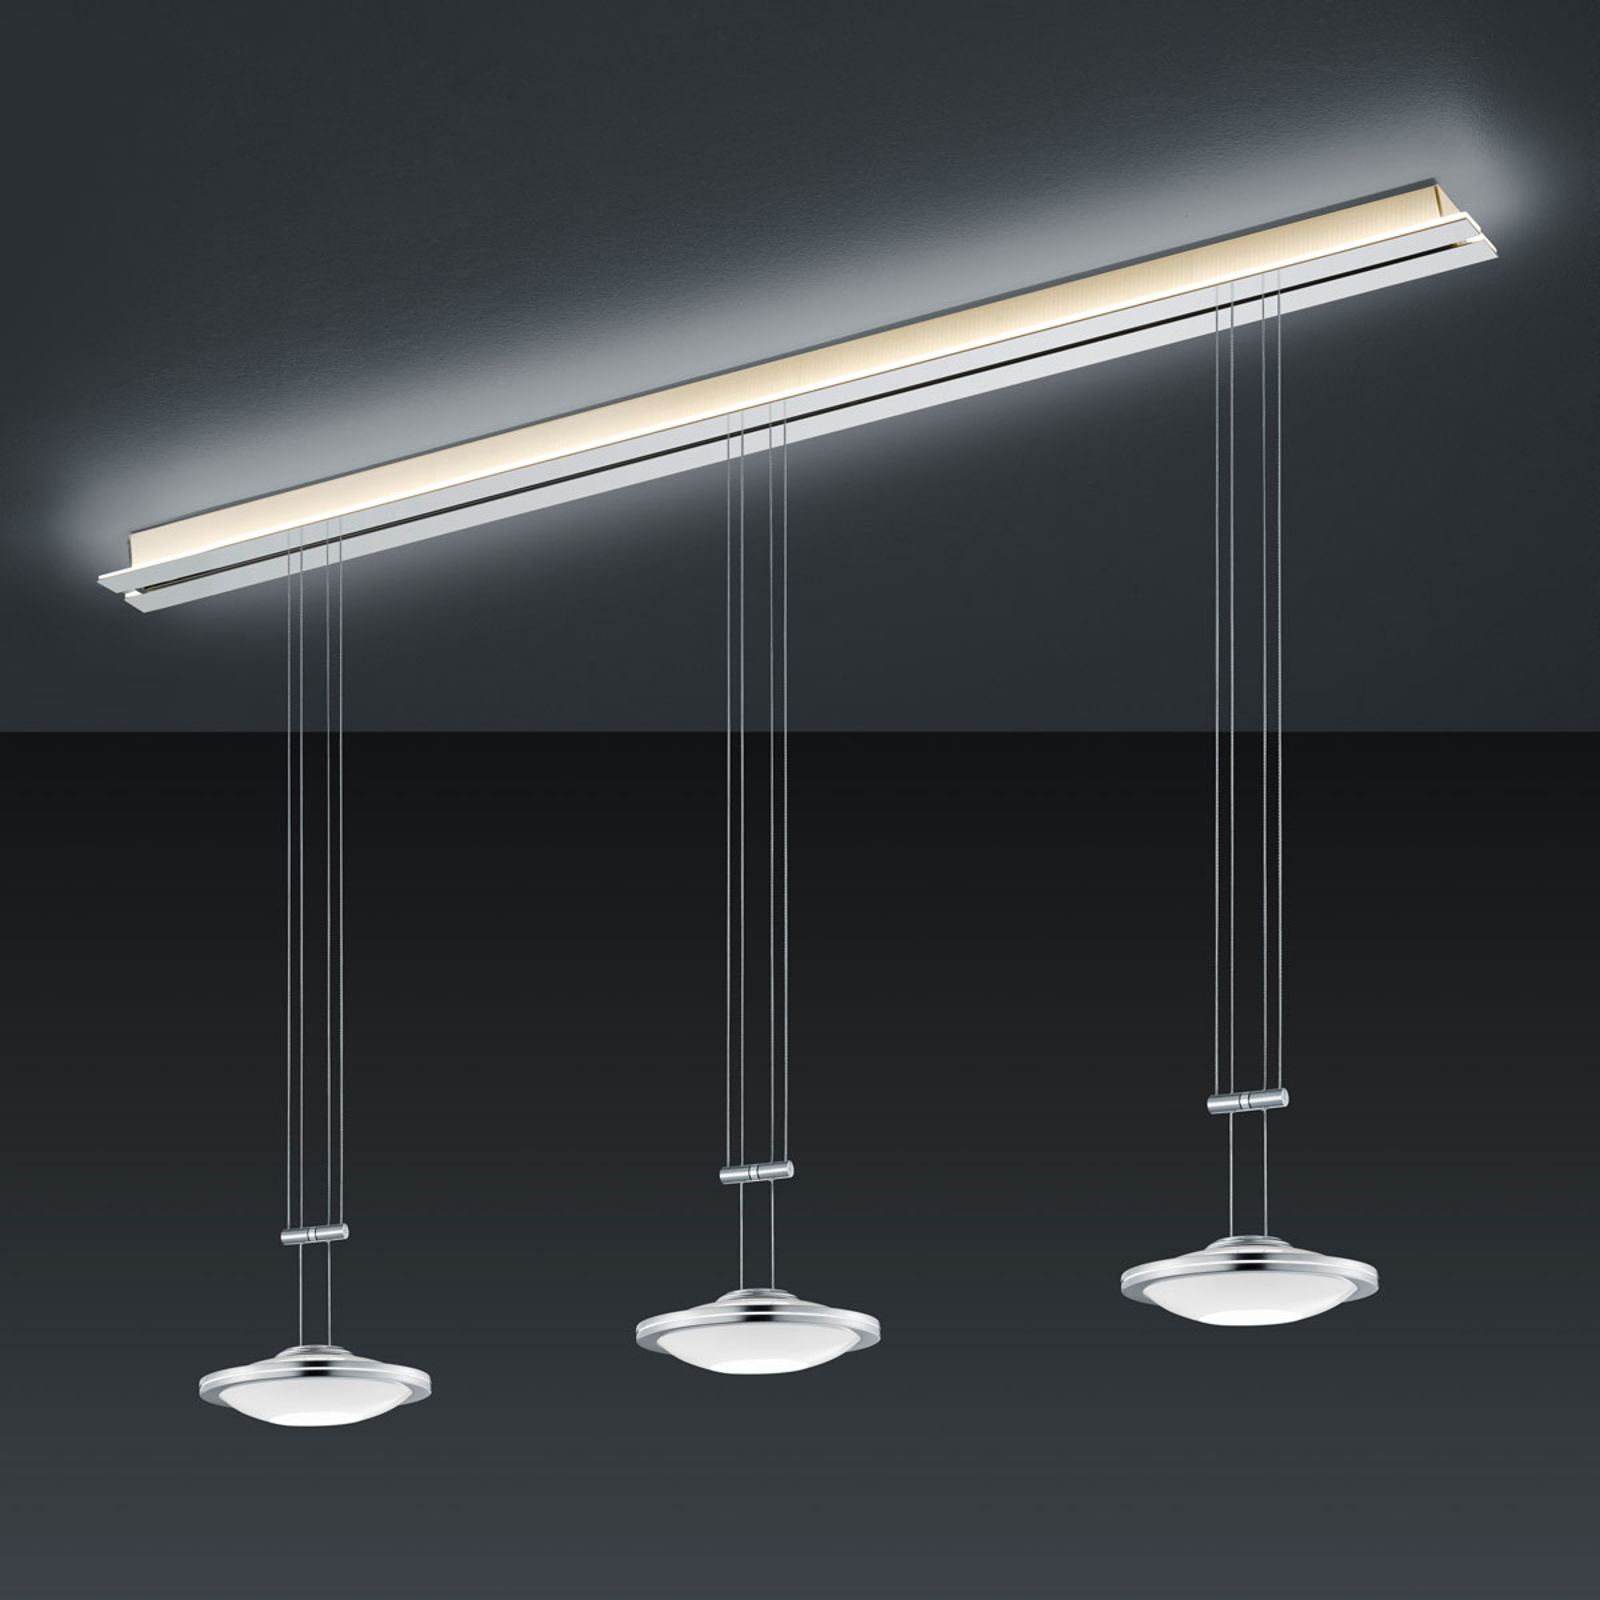 BANKAMP Strada Saturno suspension 3 lampes, 155 cm